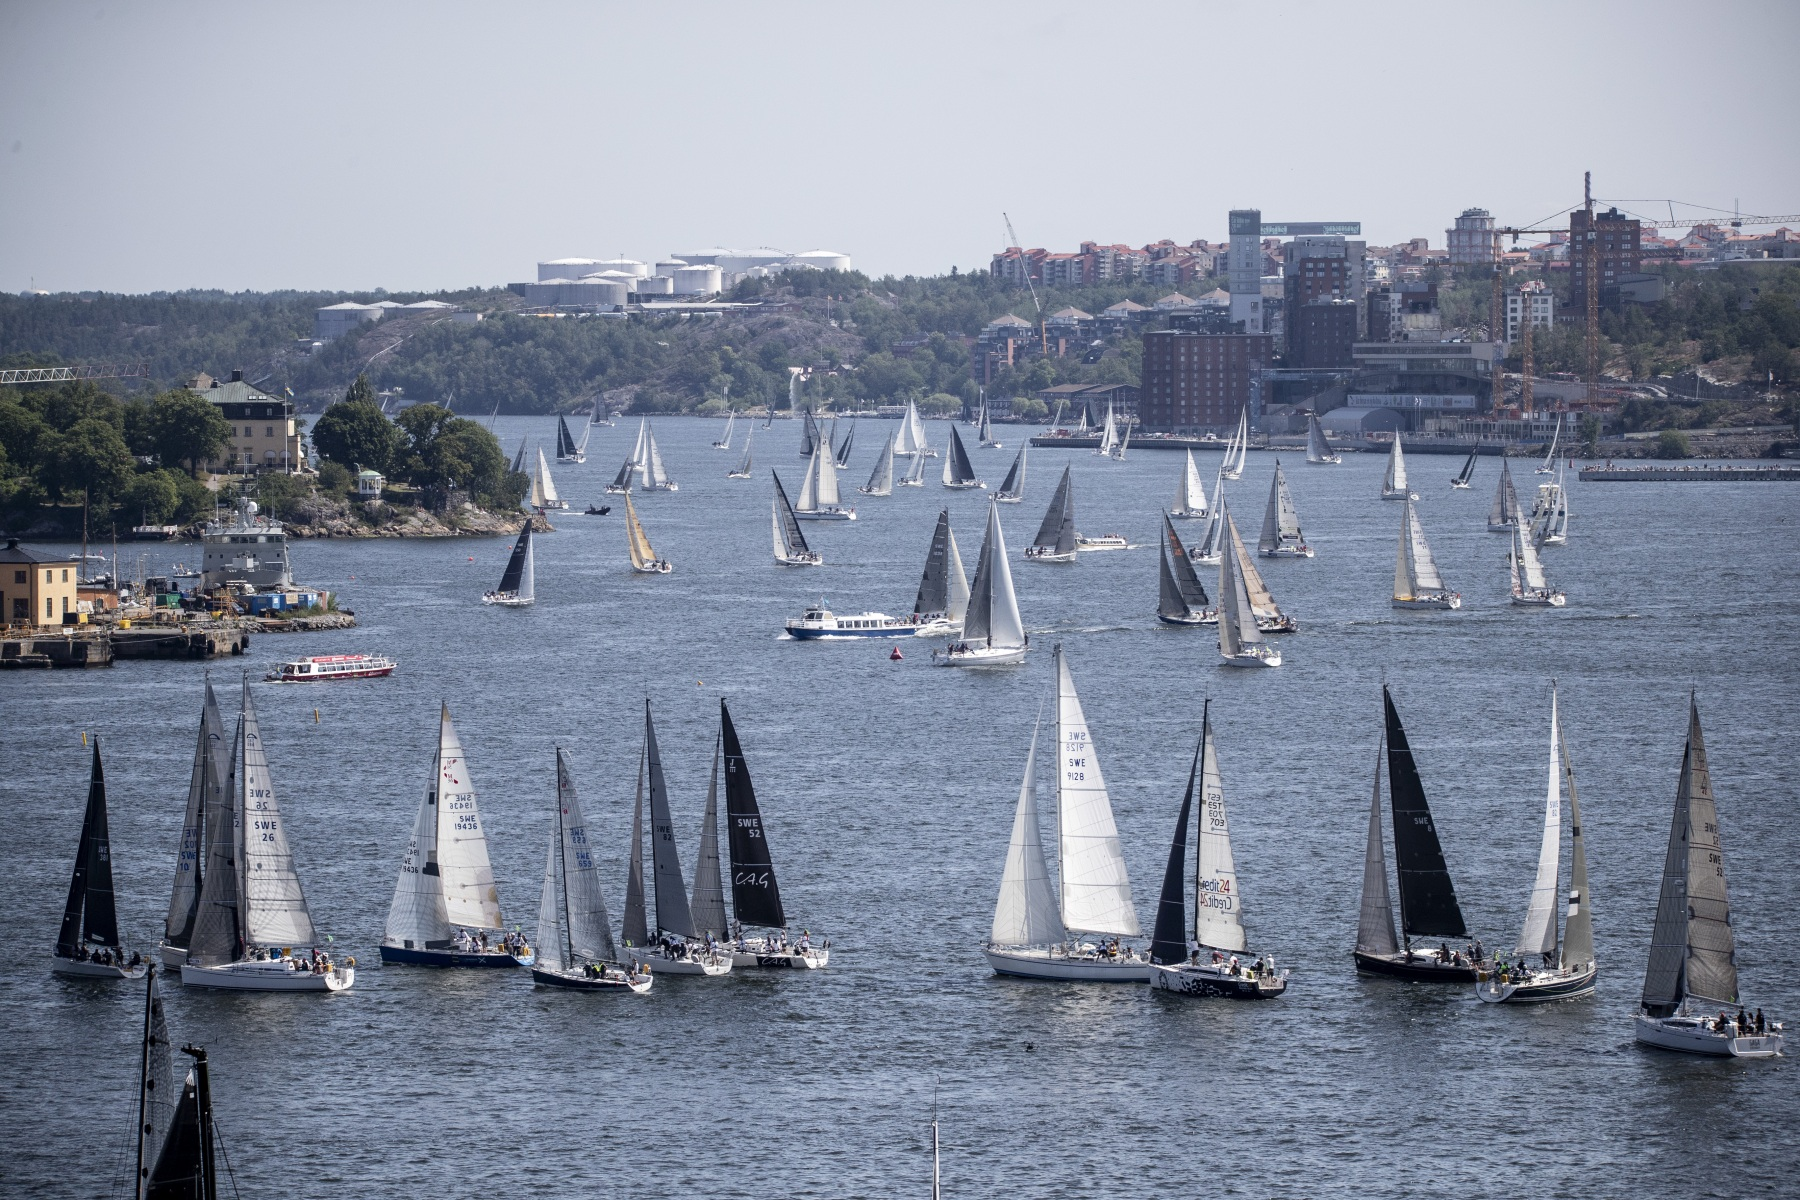 The start of ÅF Offshore Race 2019